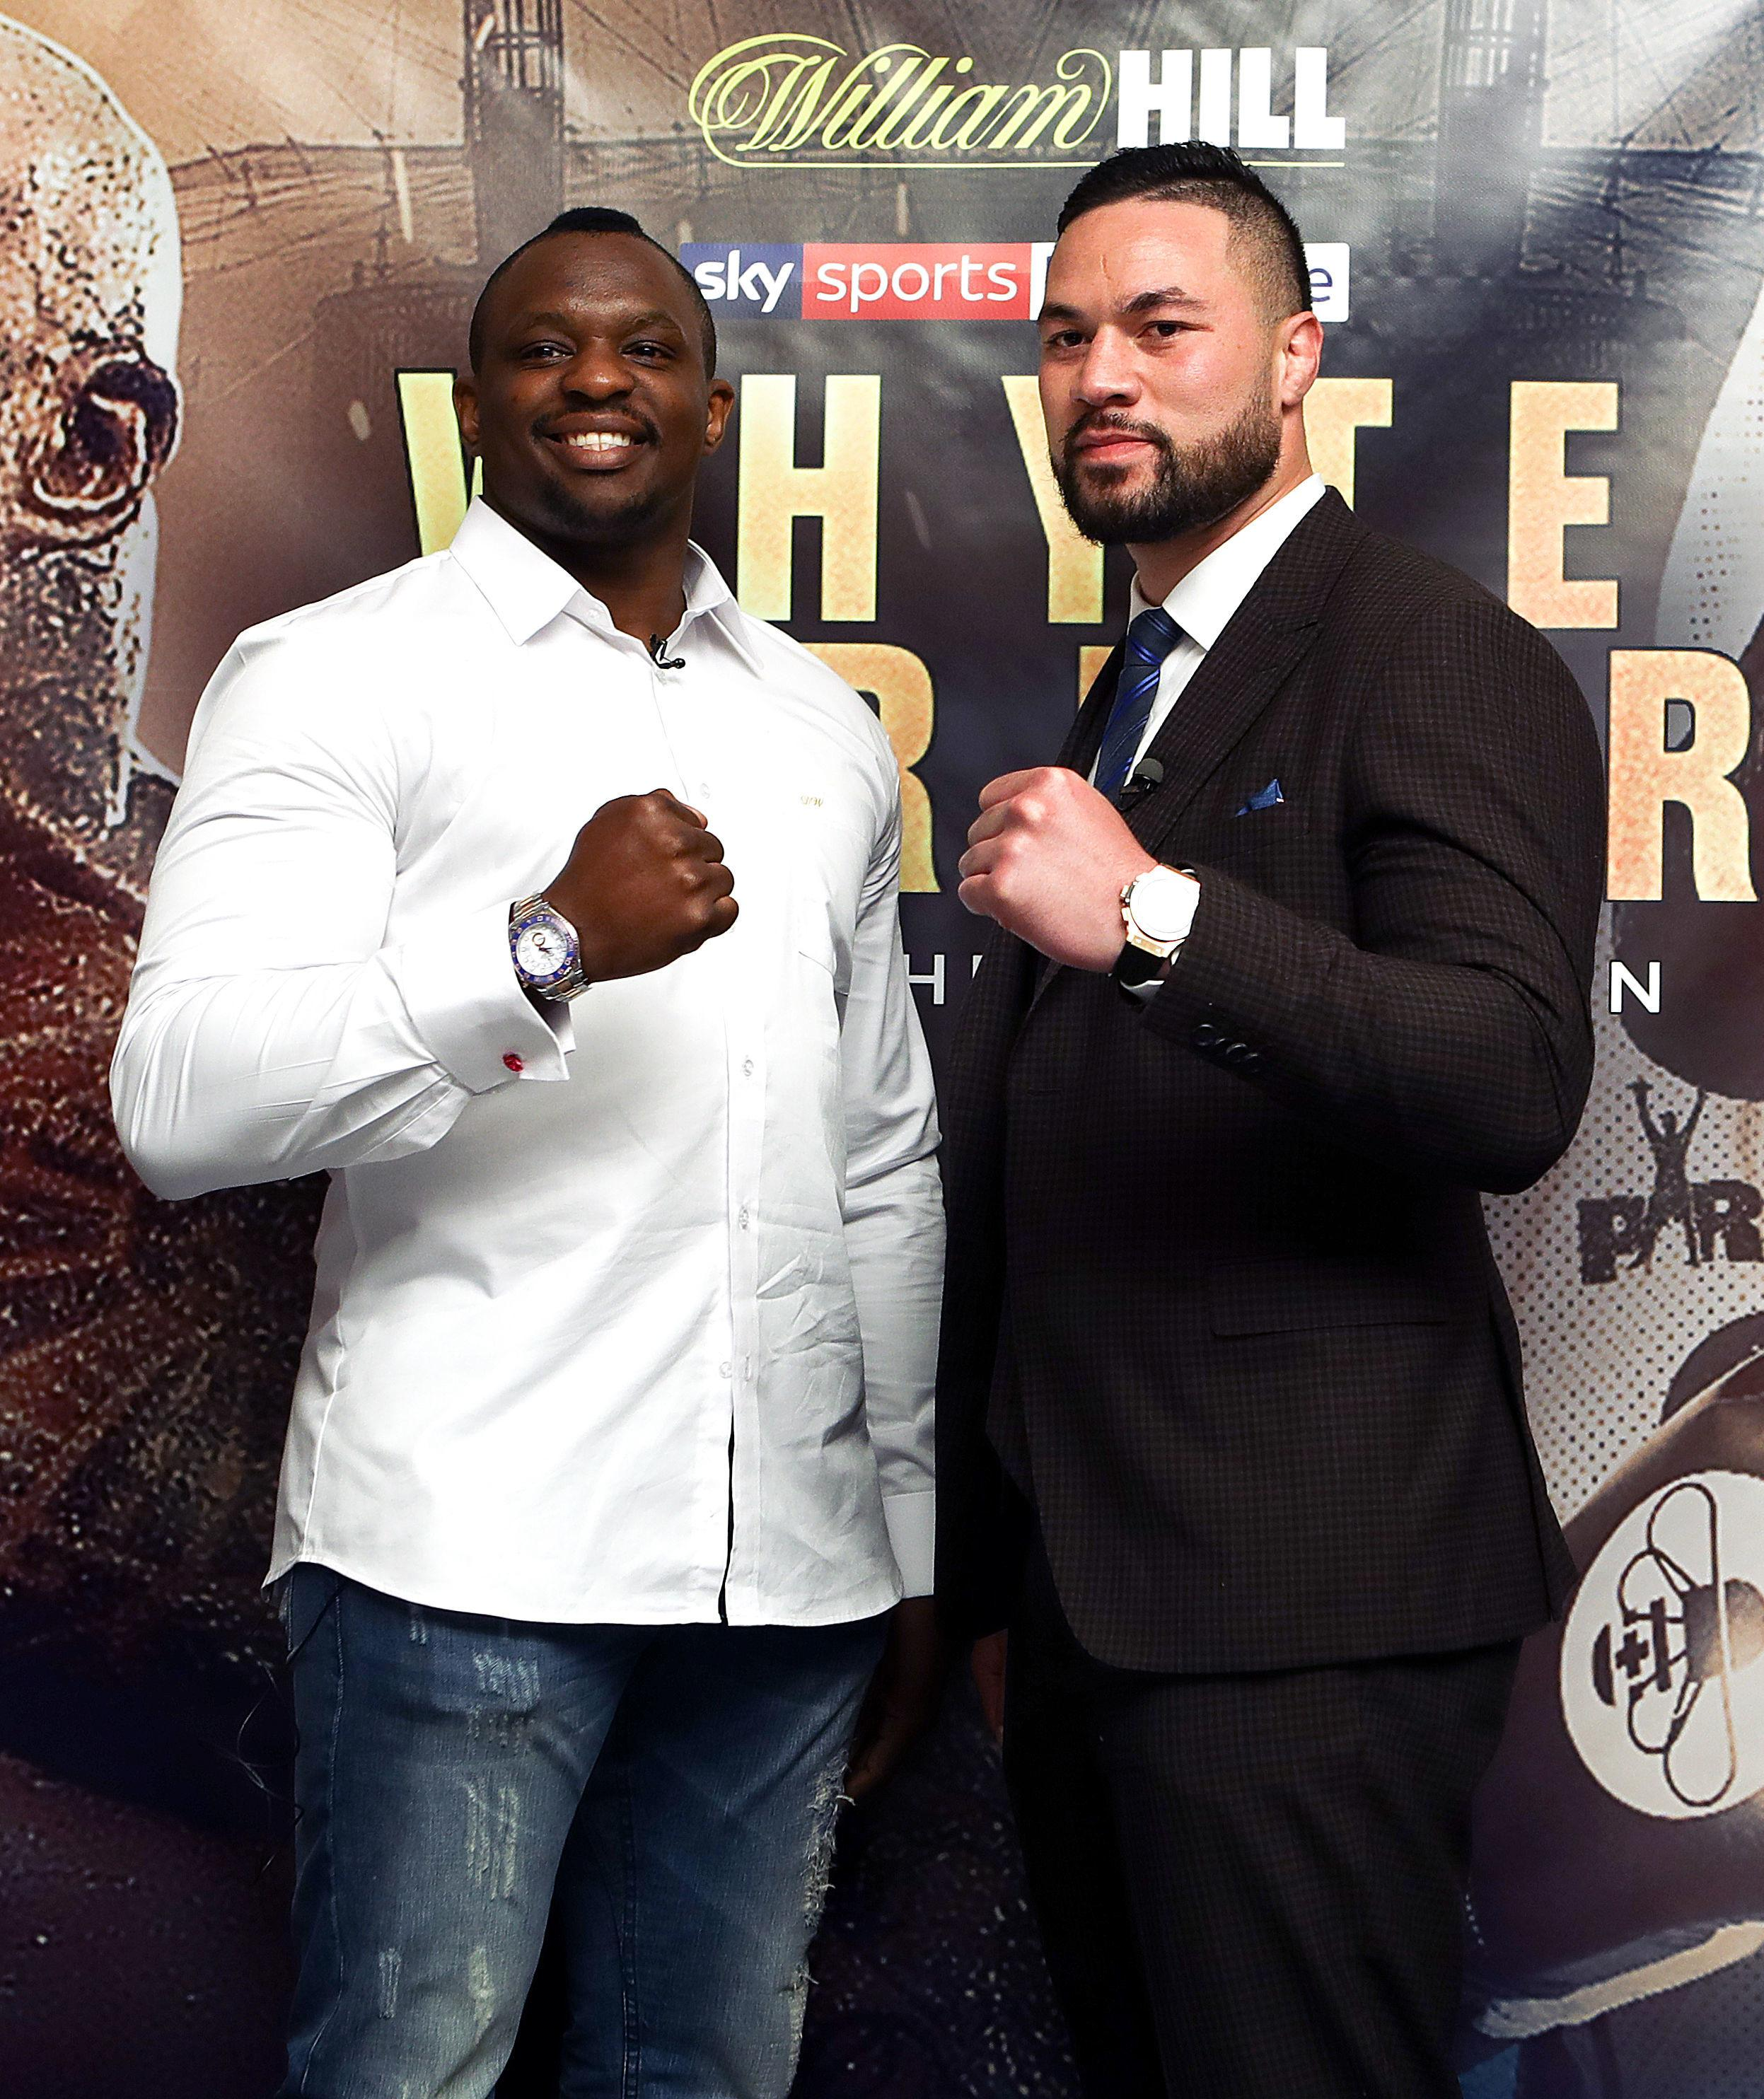 Dillian Whyte has landed the first punch already on Joseph Parker ahead of next weekend's fight